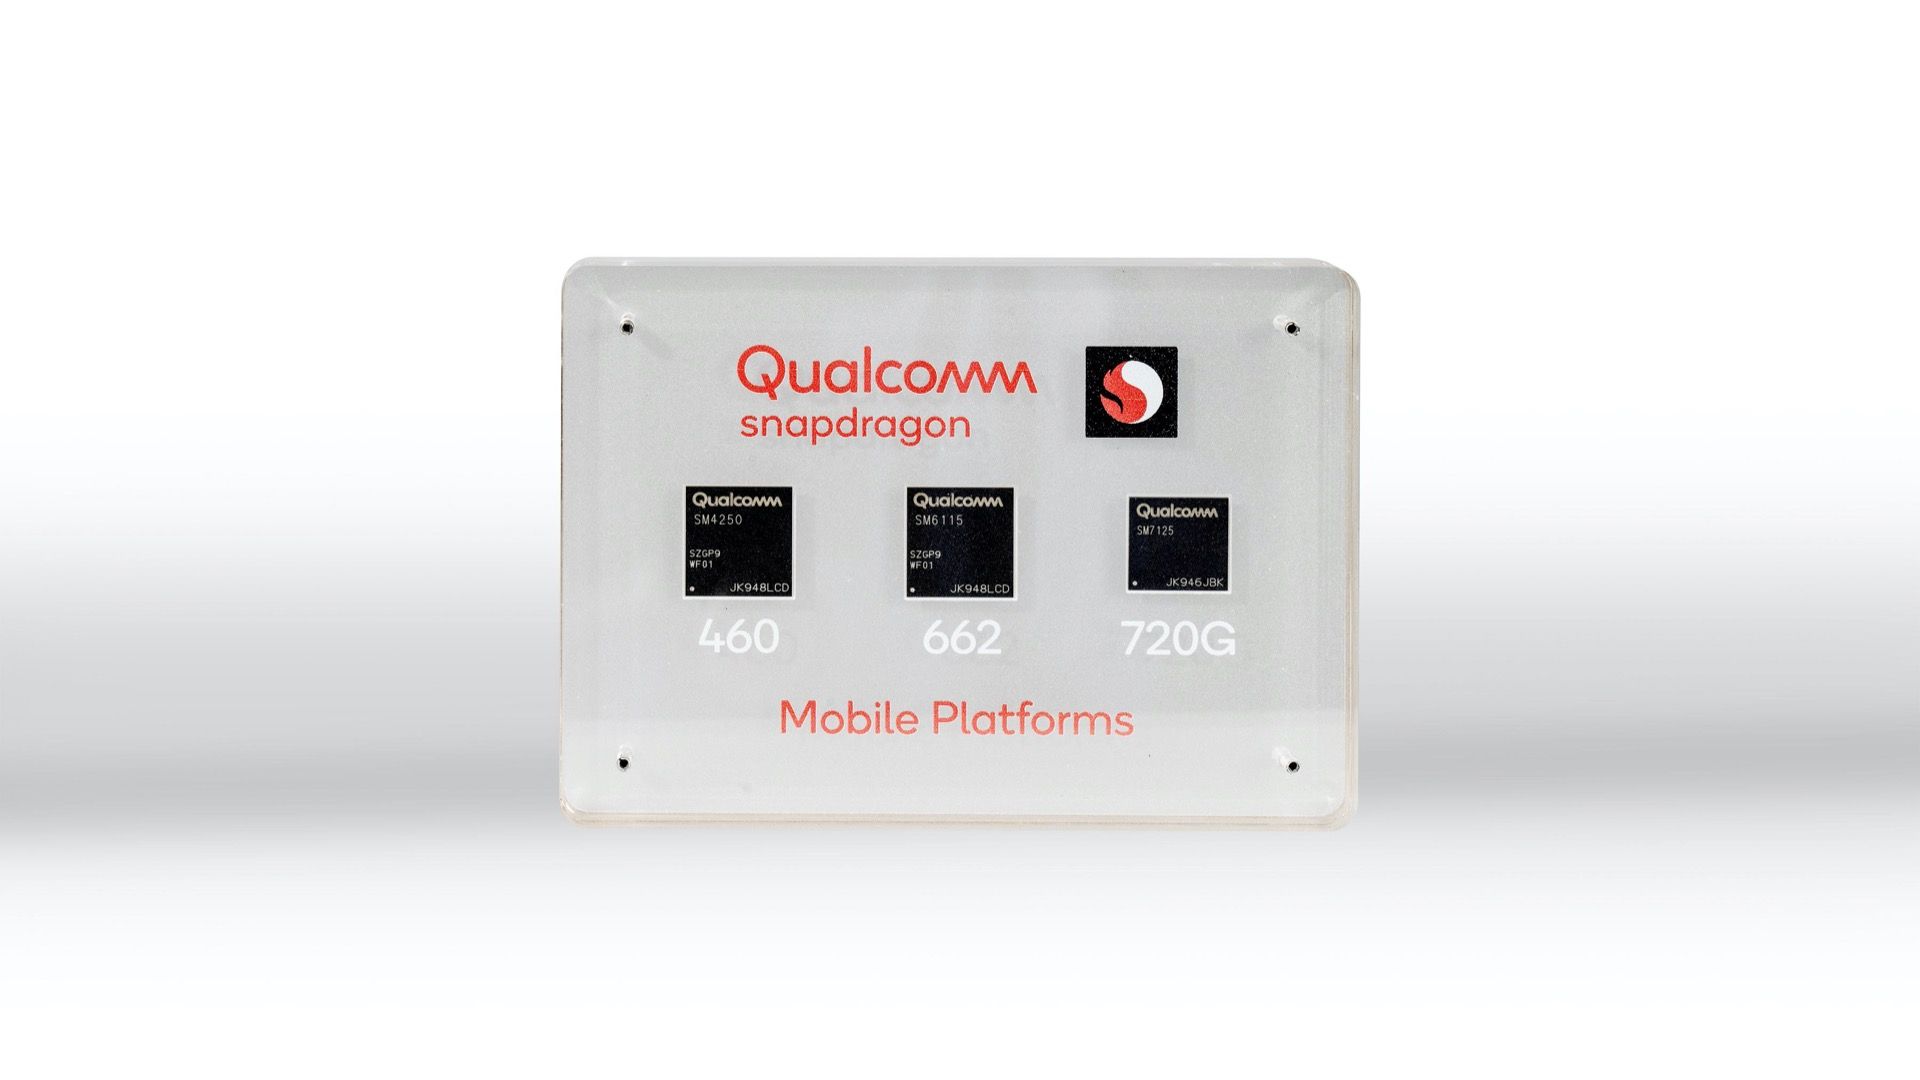 Qualcomm announces Snapdragon 720G, 662 and 460 with WiFi 6 and NavIC navigation system support